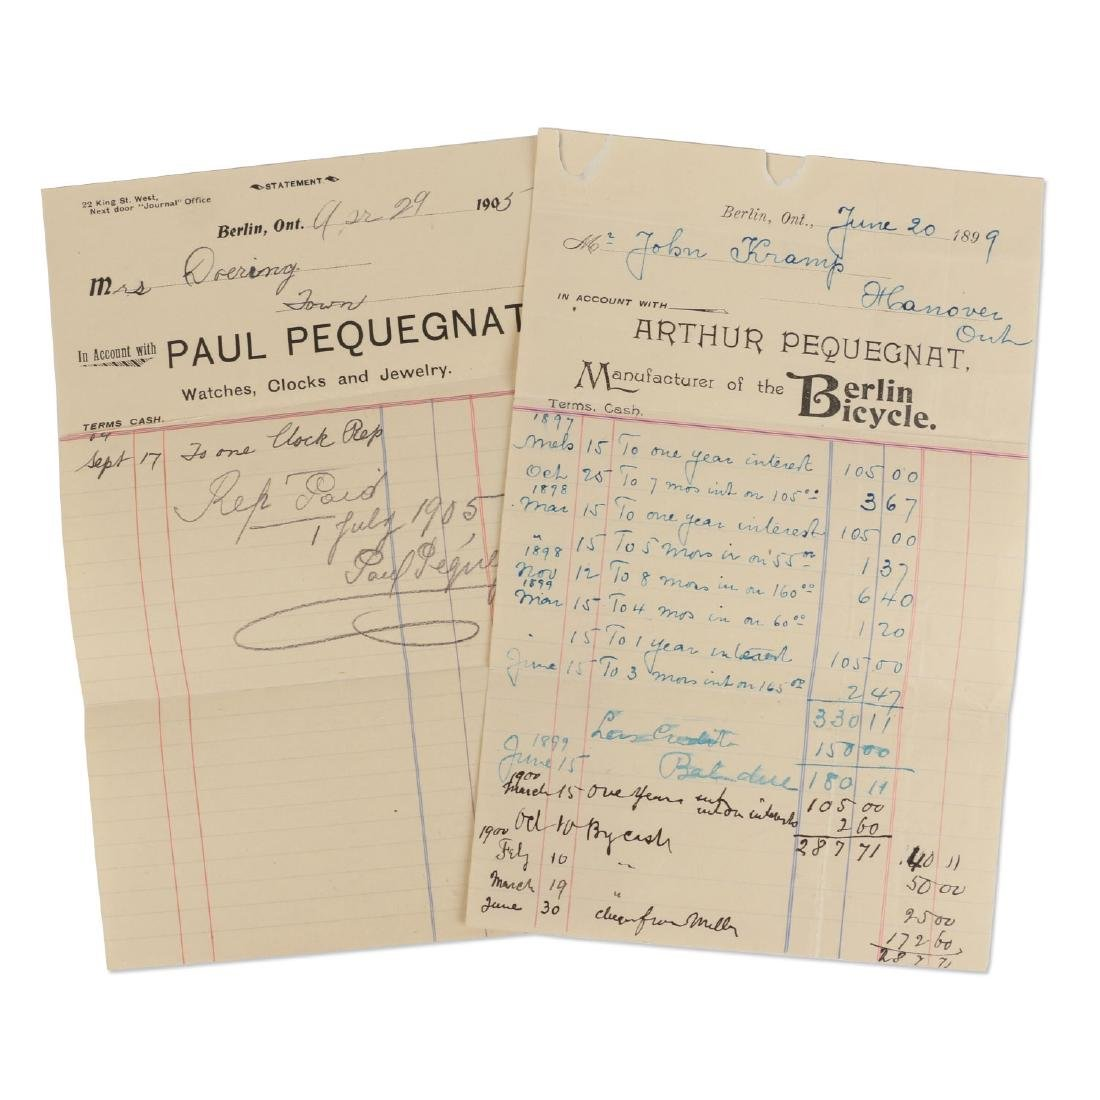 Two (2) Paul Pequegnat (Berlin Bicycle) Invoices